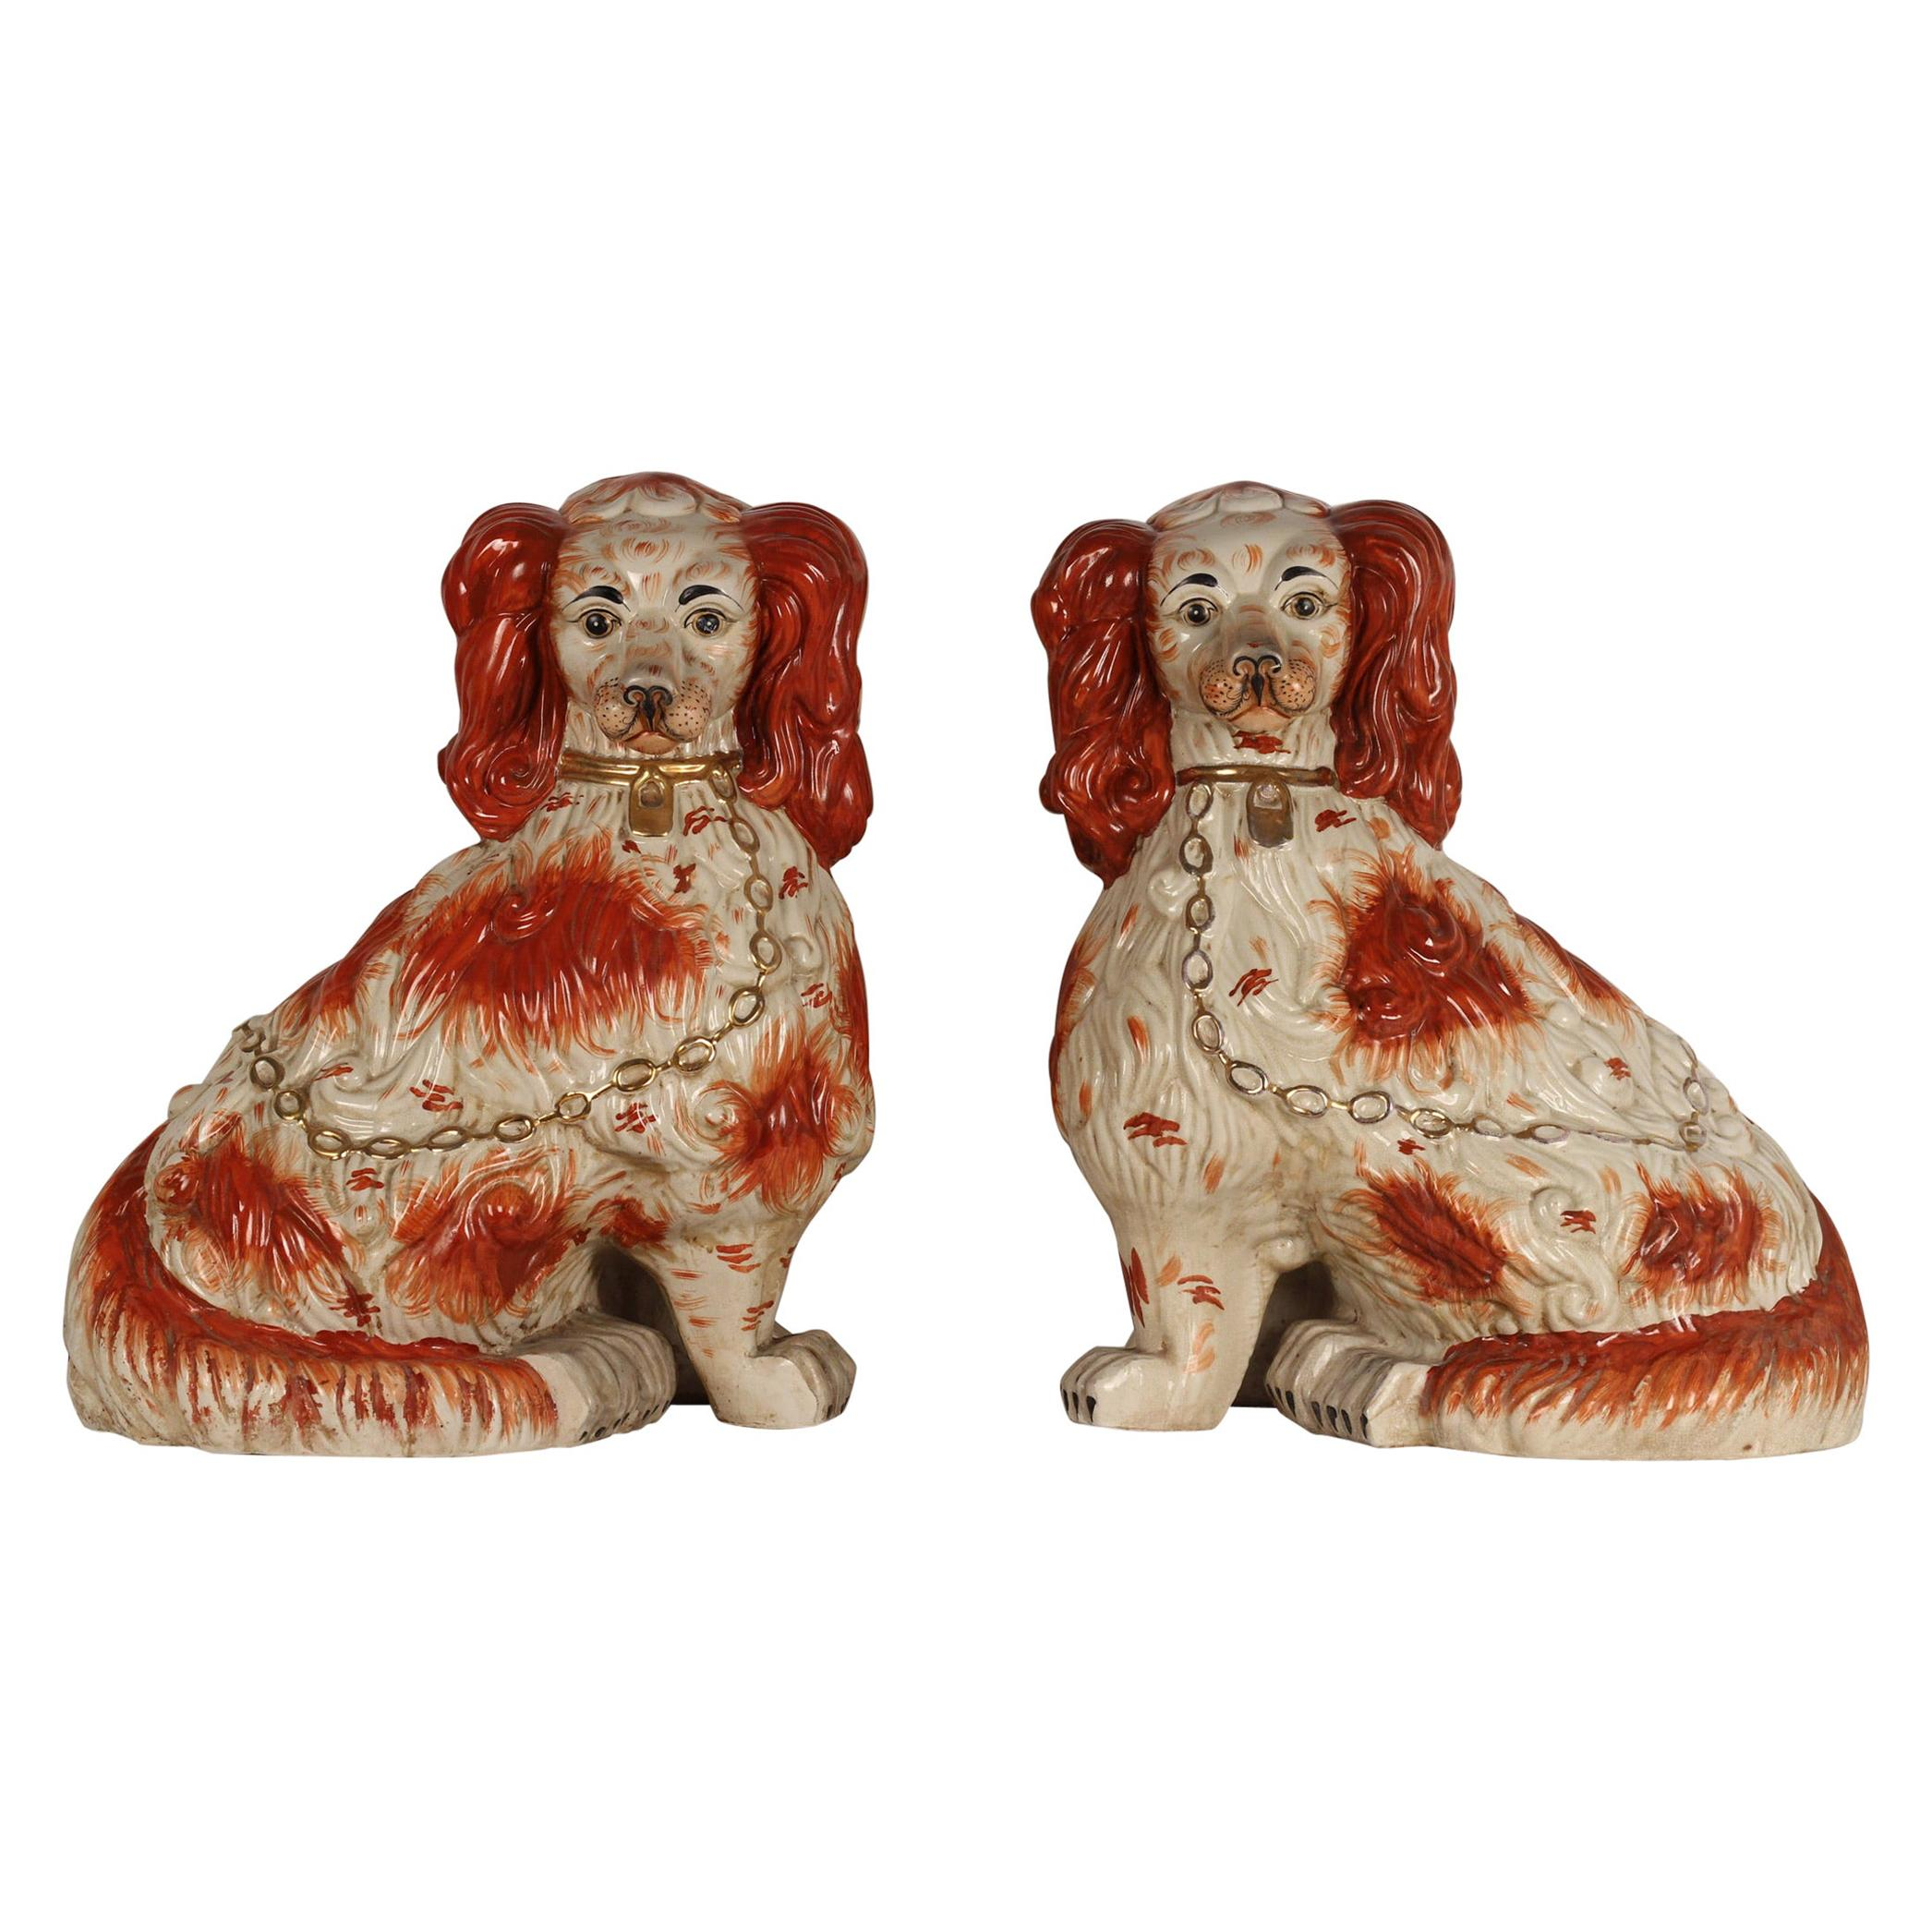 A Pair of Large English Porcelain Cavalier King Charles Spaniels Staffordshire